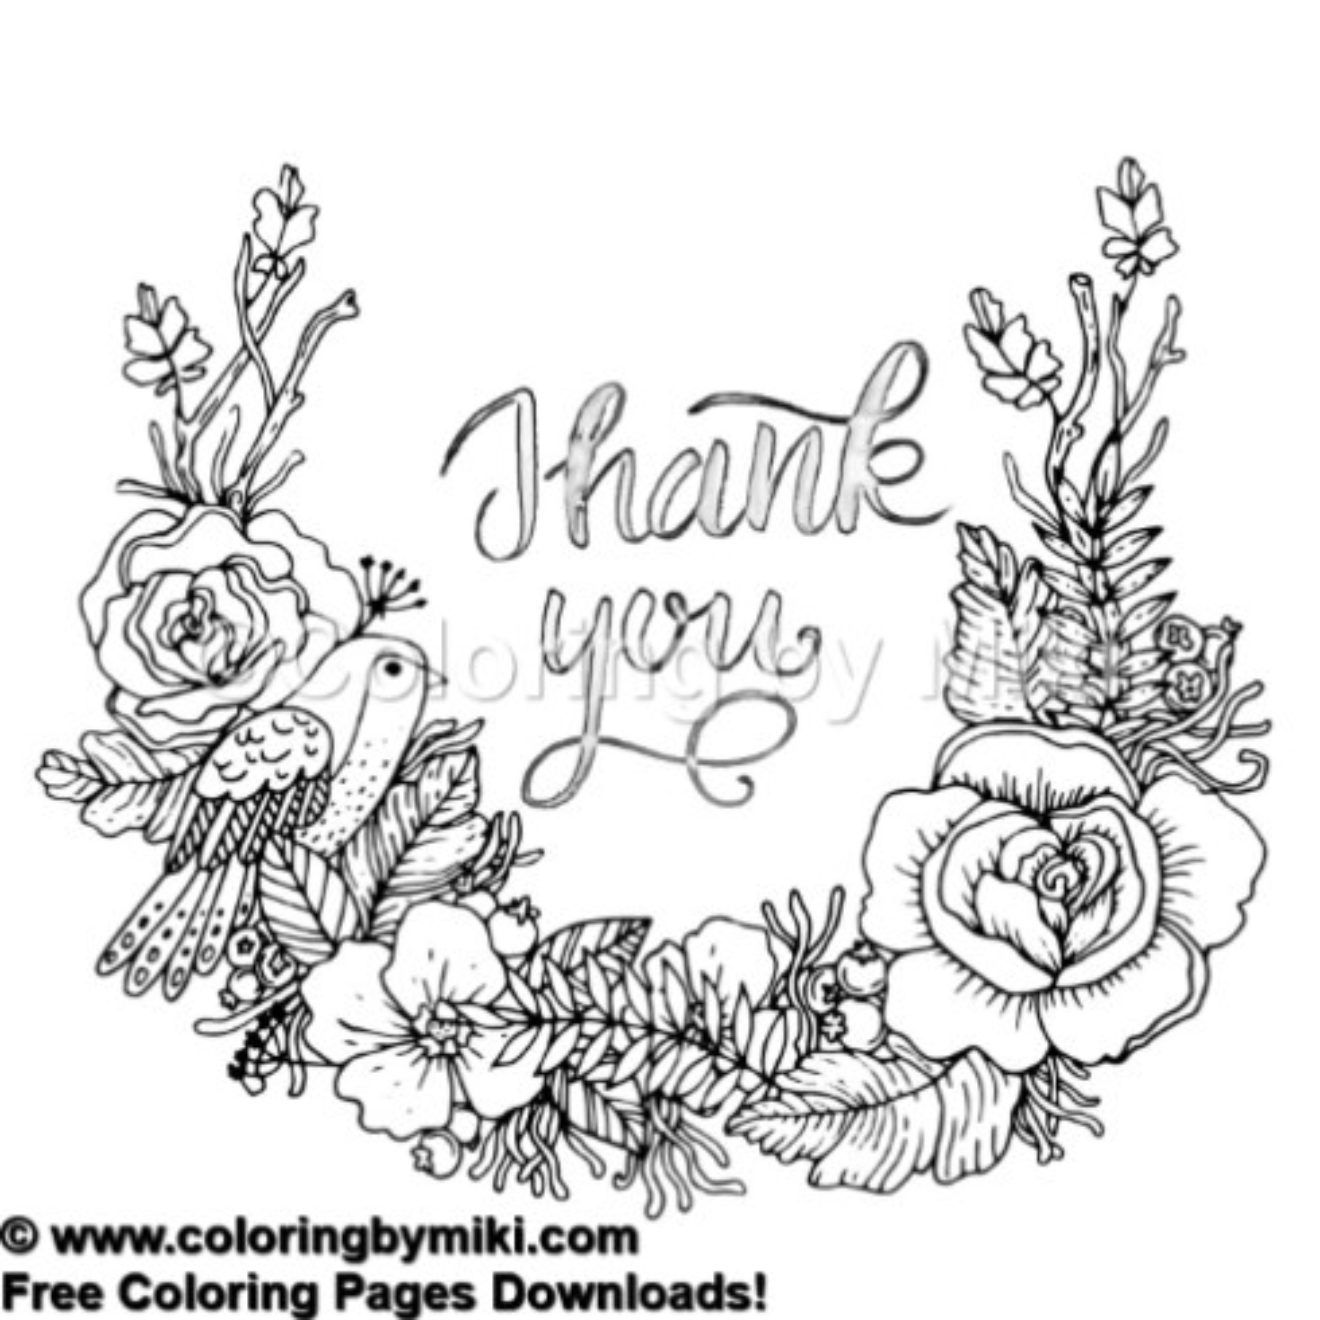 Thank You Note Flower Wreath Coloring Page #485 (With